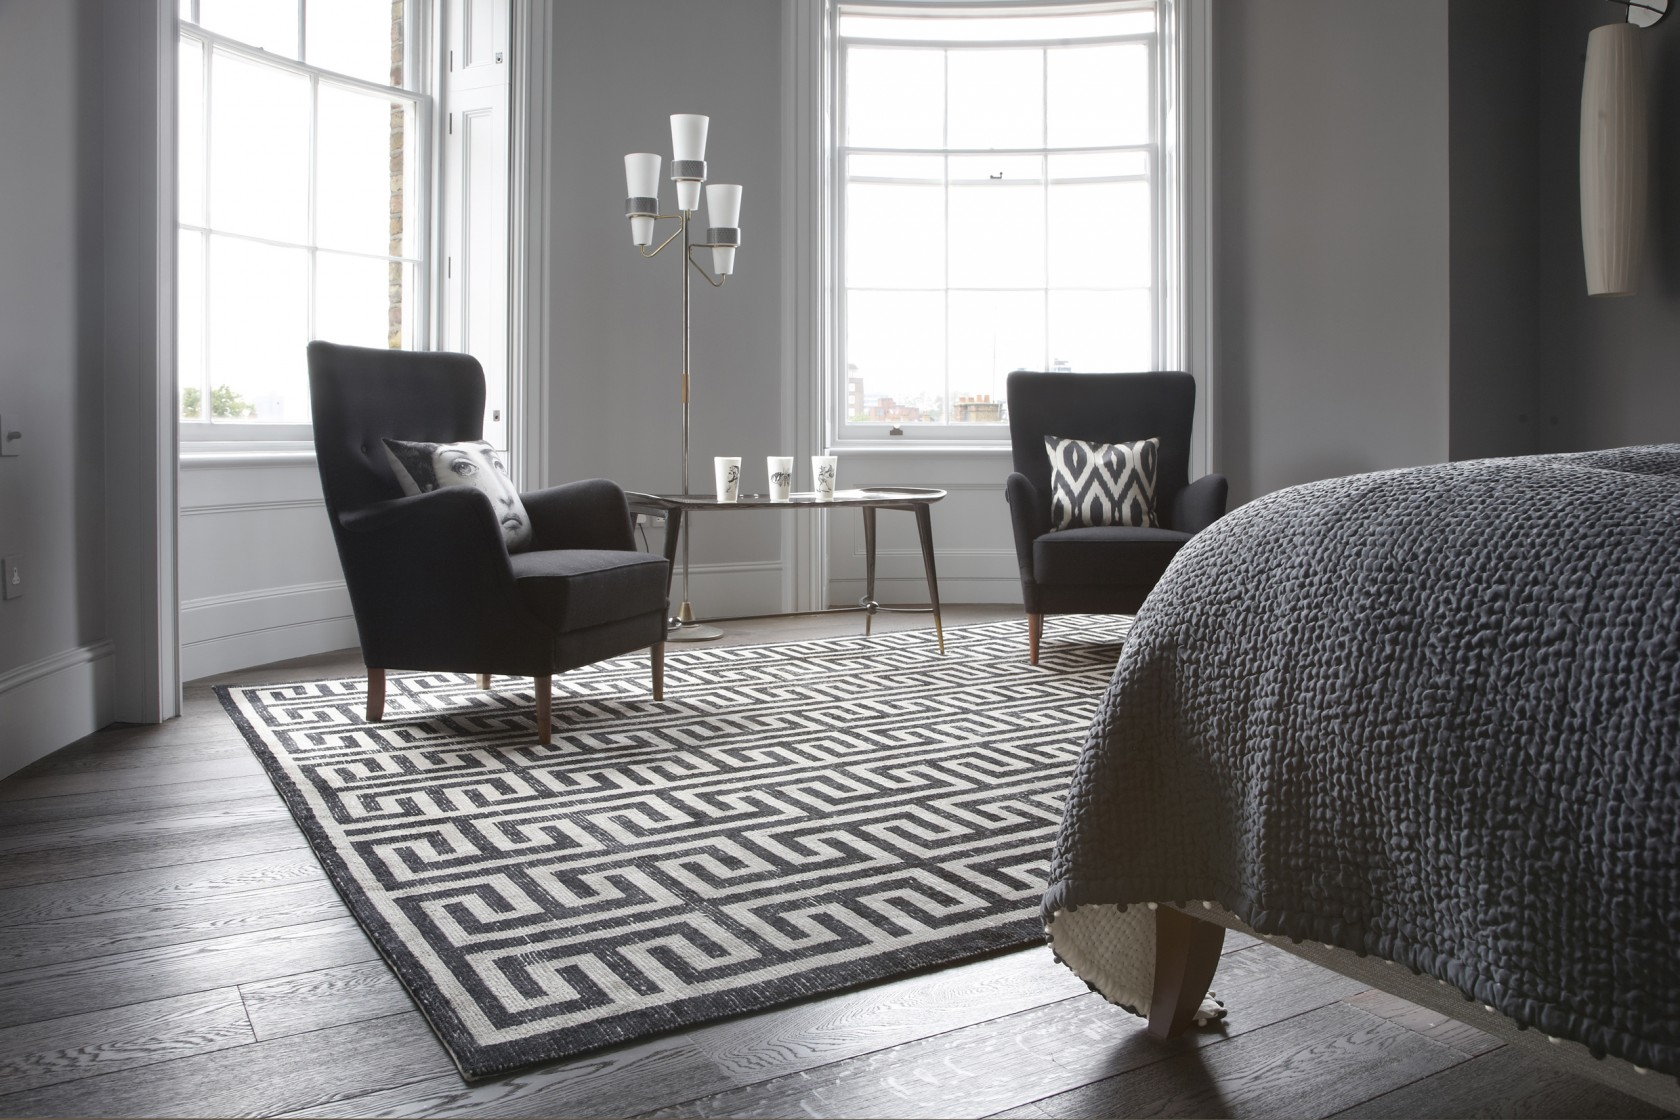 Zeus Black And White Rug Bazaar Velvet London Rugs